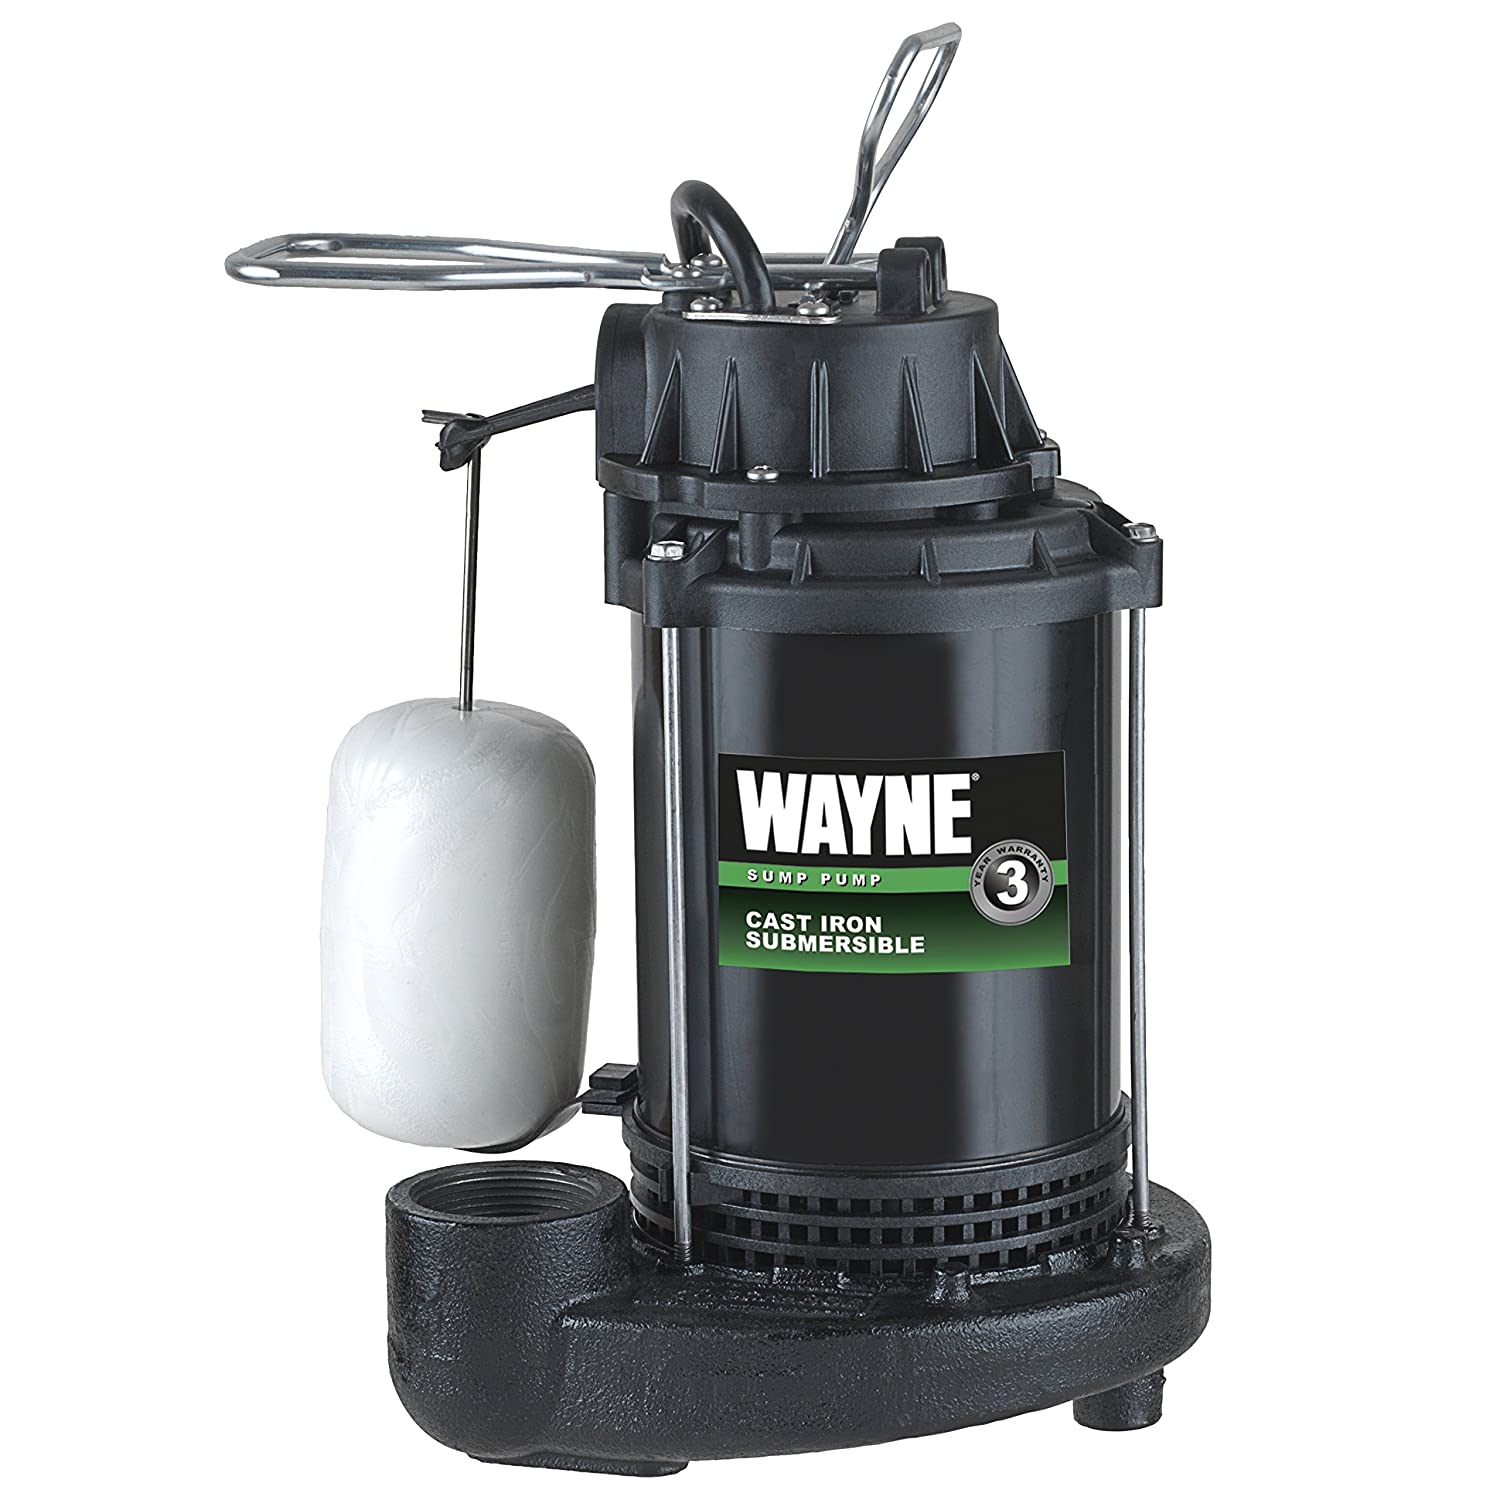 e0eaccd072b8 WAYNE CDU790 1 3 HP Submersible Cast Iron and Steel Sump Pump With  Integrated Vertical Float Switch - - Amazon.com